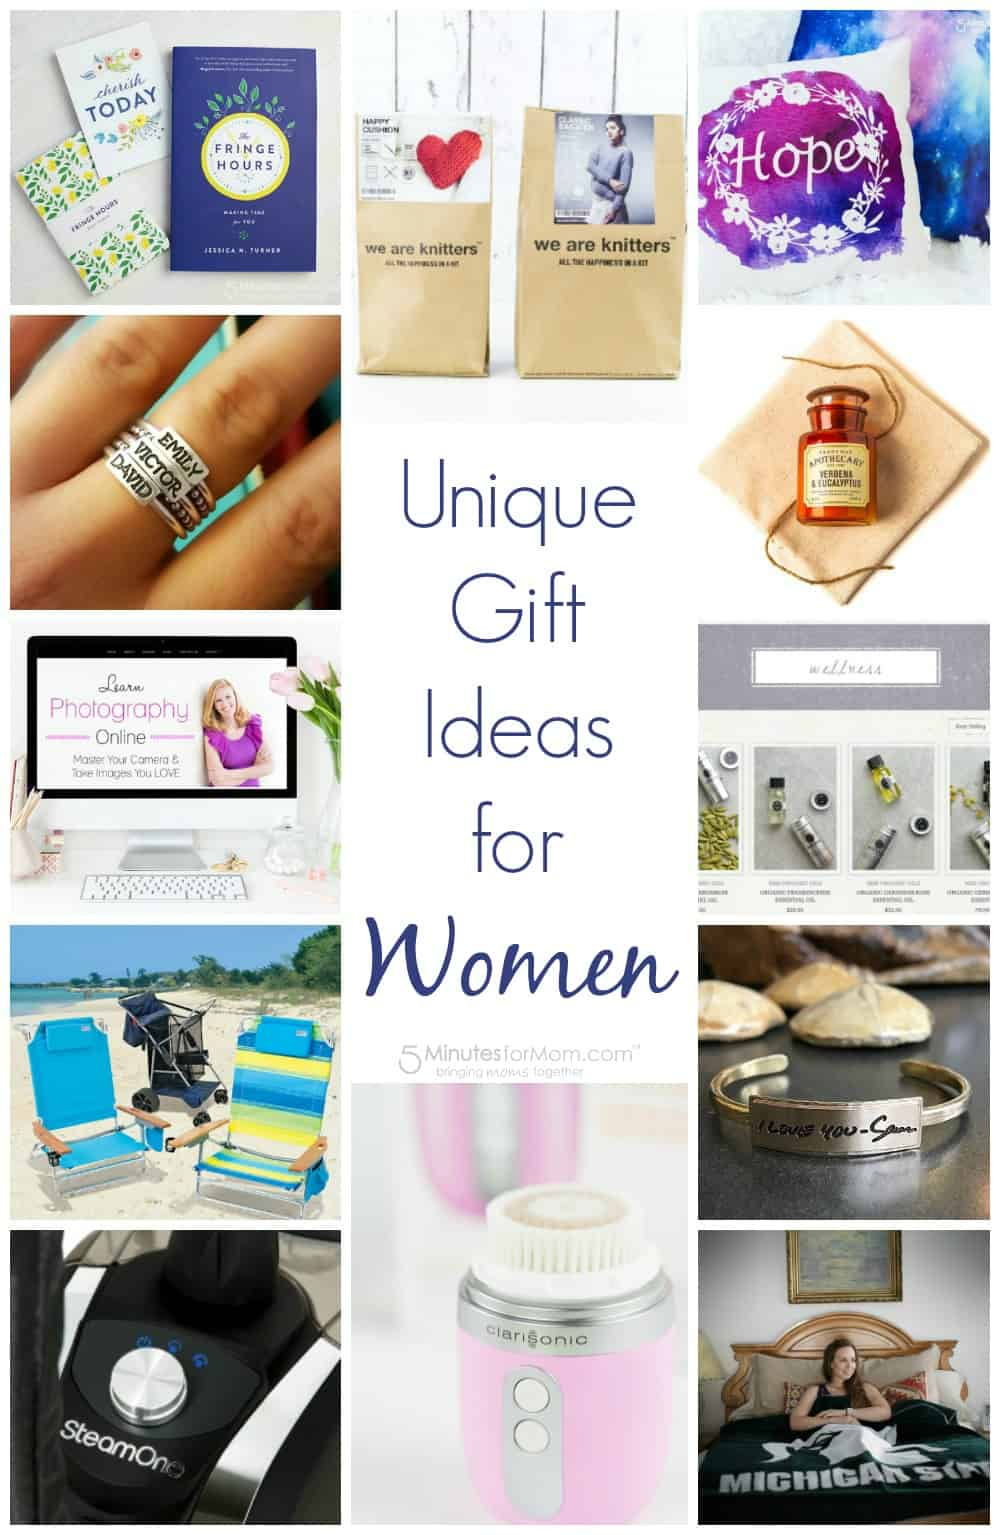 Gift Guide - Unique gift ideas for women